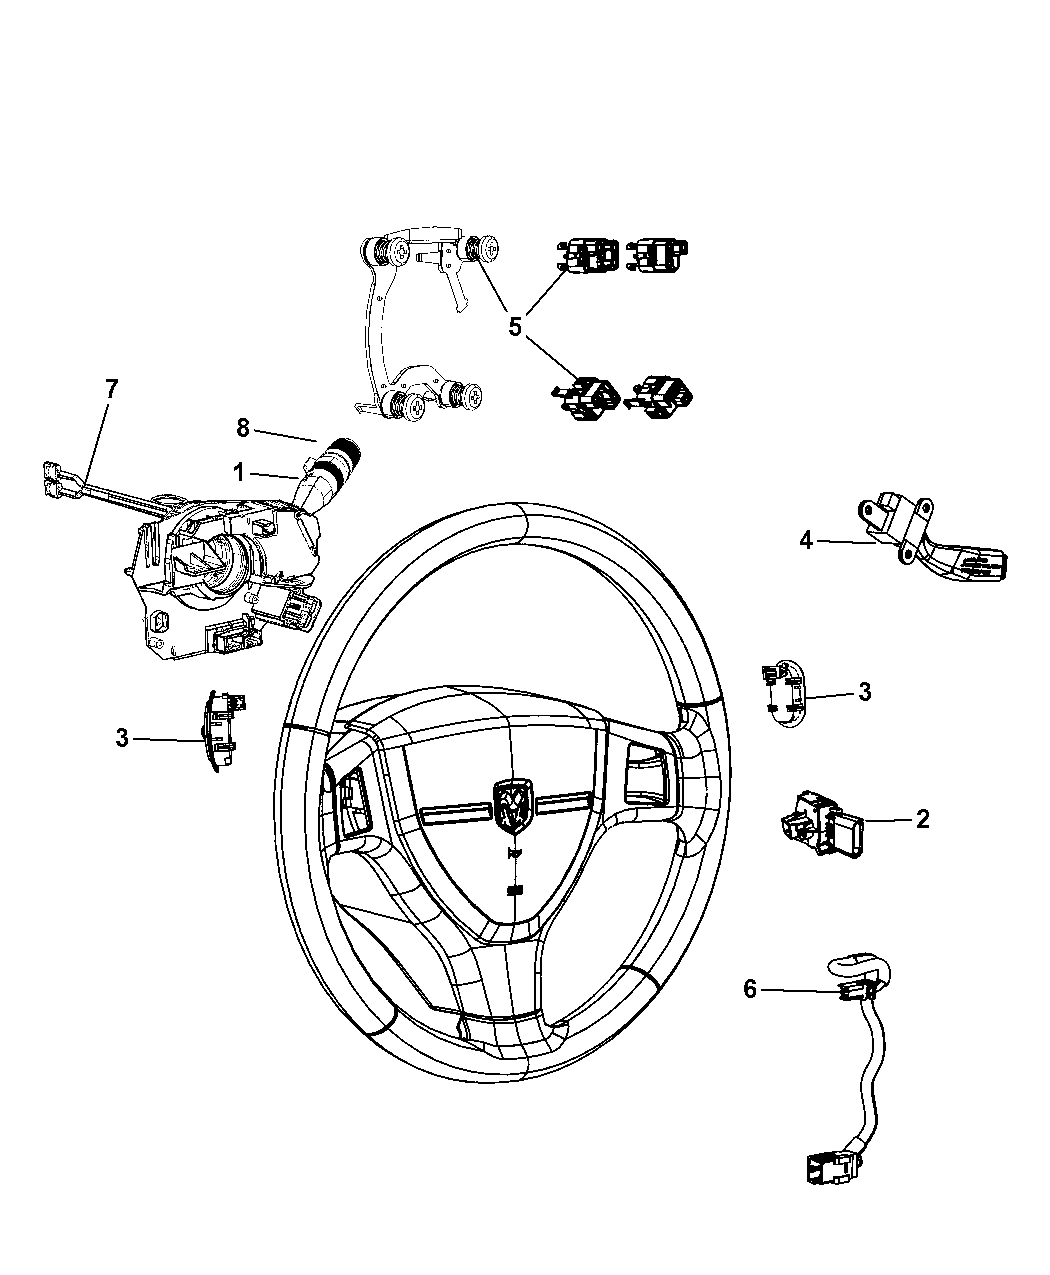 Overland Jeep Steering Parts Diagram. Jeep. Auto Wiring